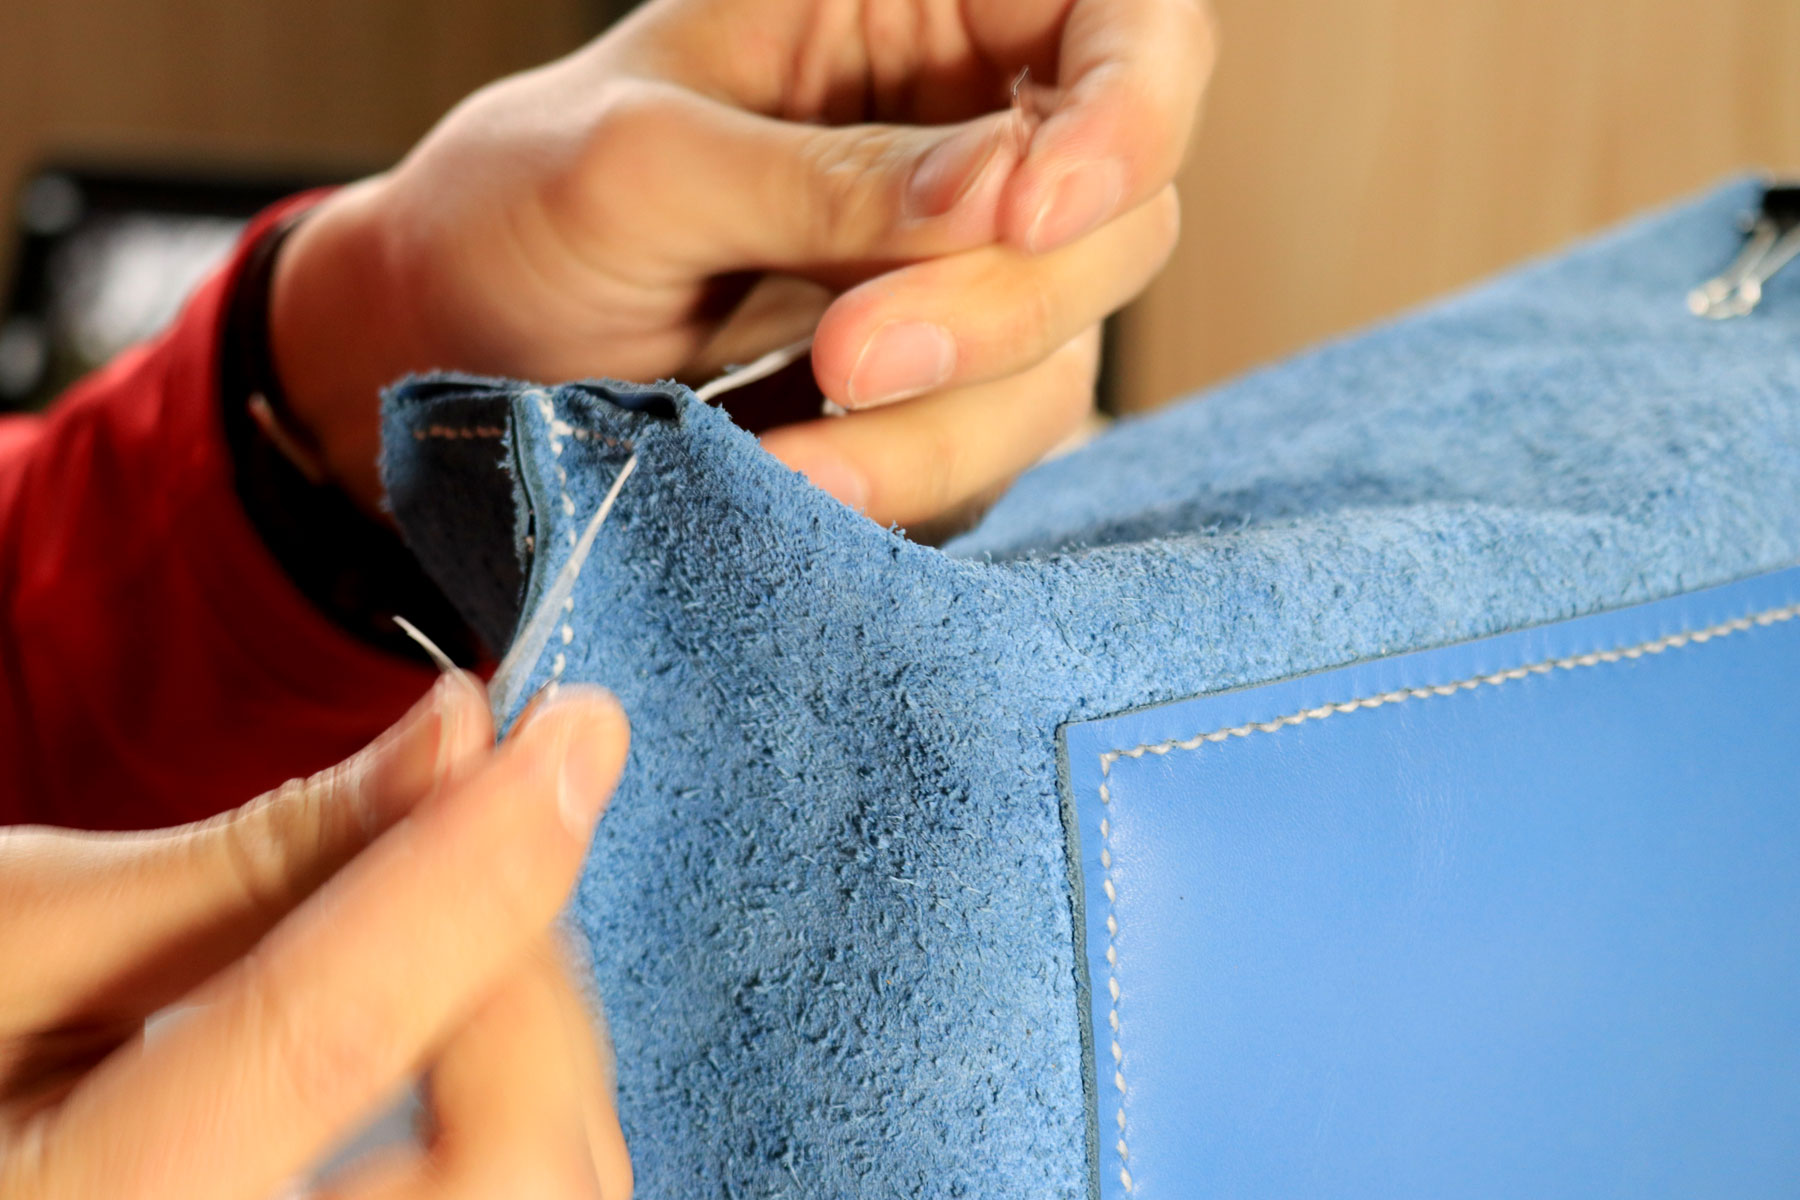 Stitching bottom corners of leather tote bag